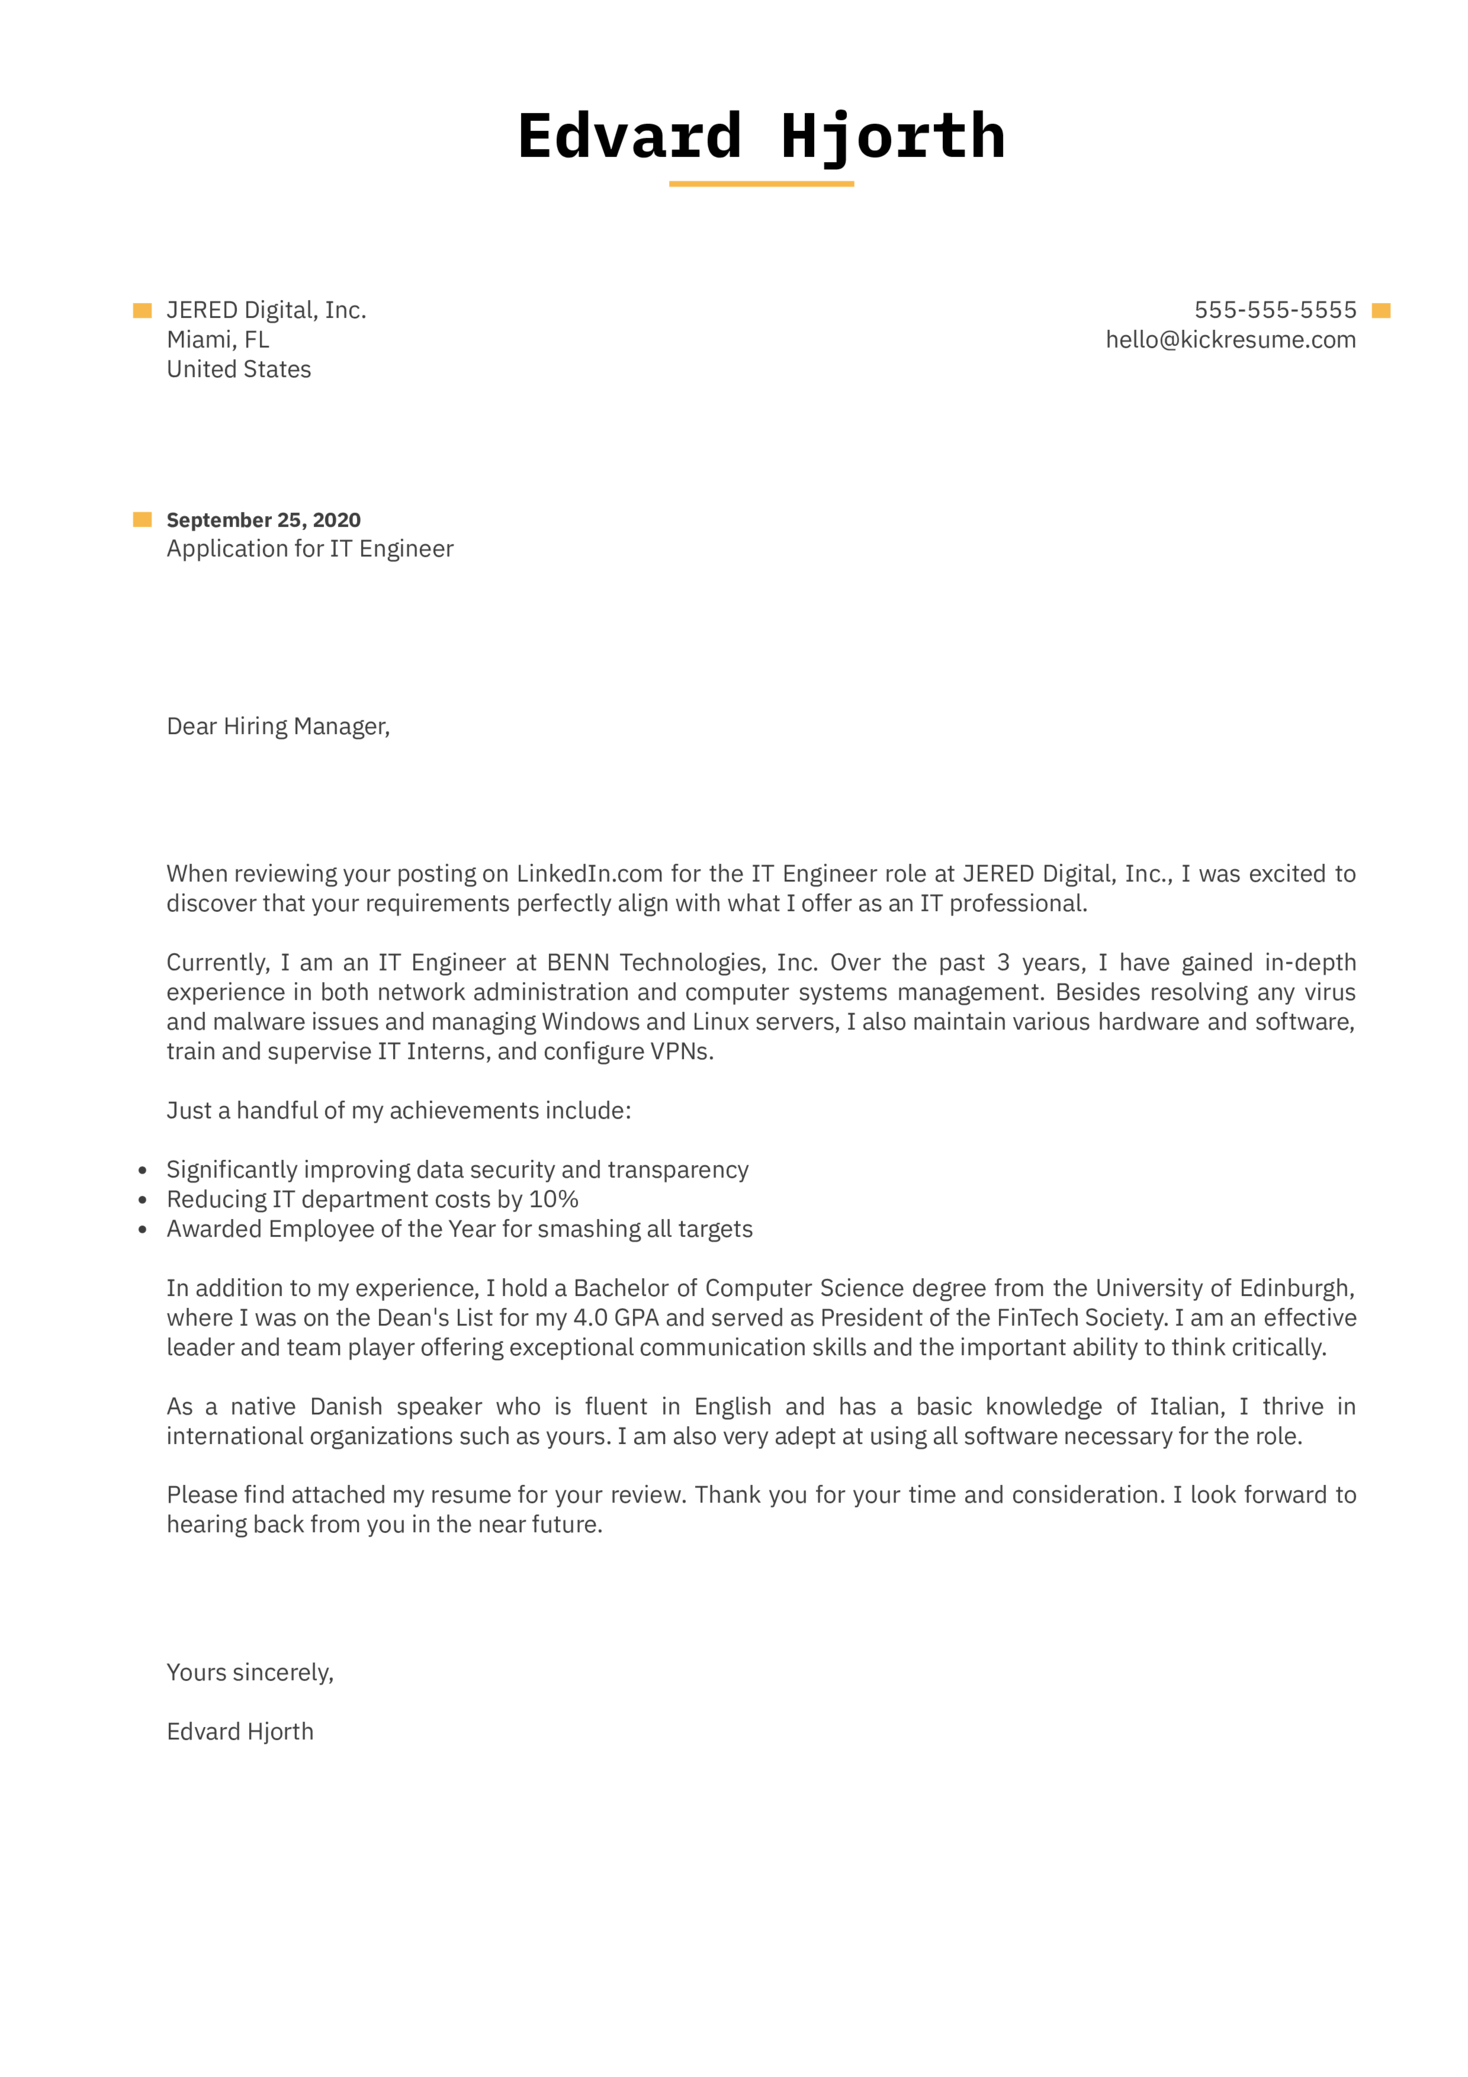 IT Engineer Cover Letter Example